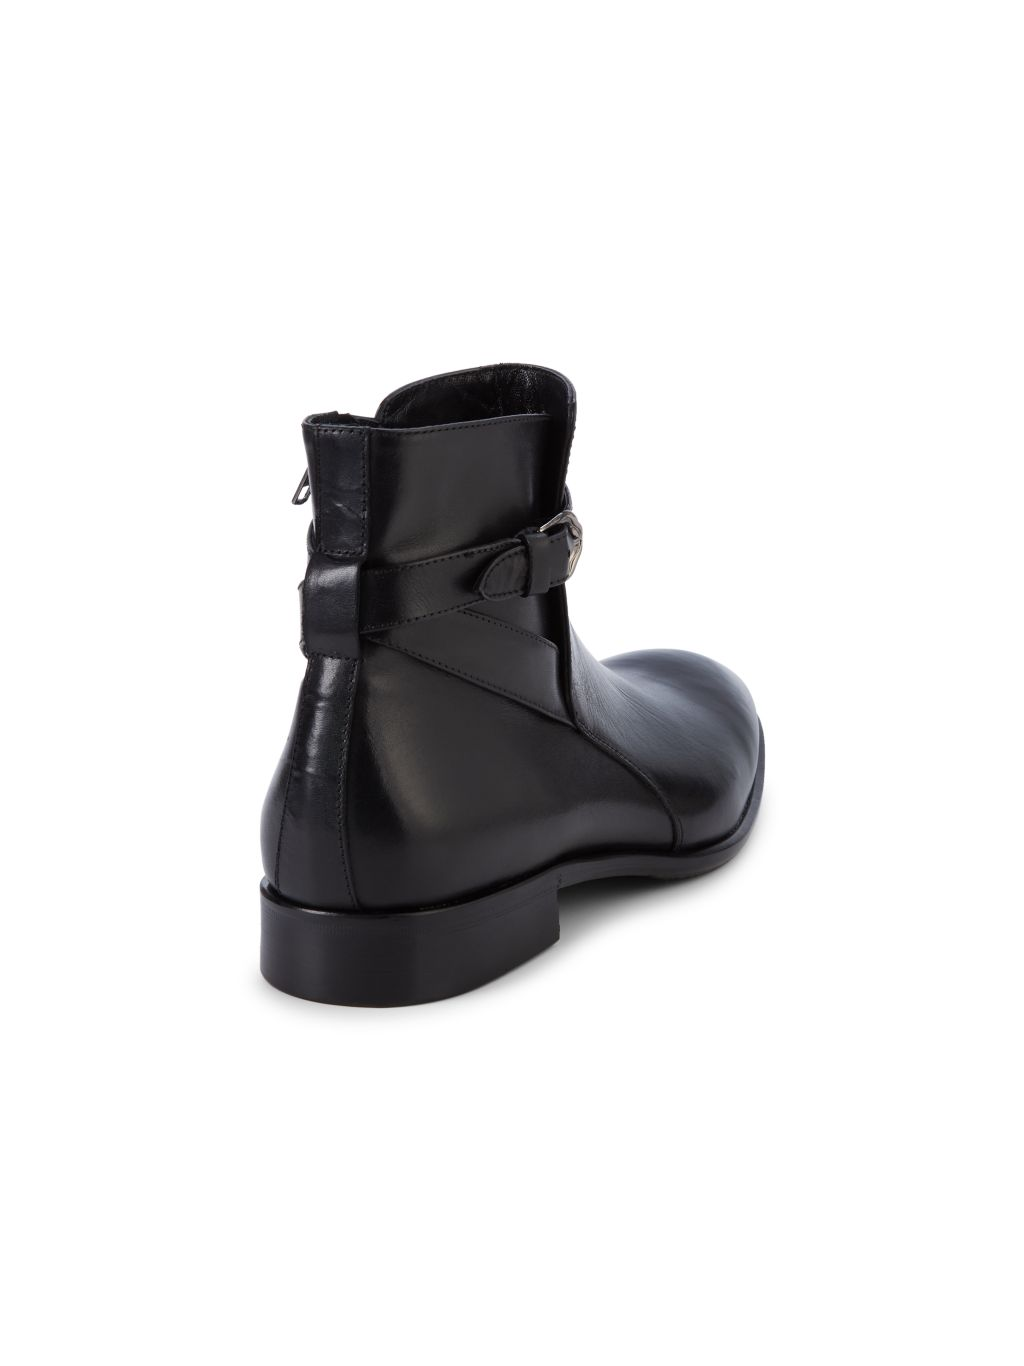 Roberto Cavalli Side Buckle Leather Boots